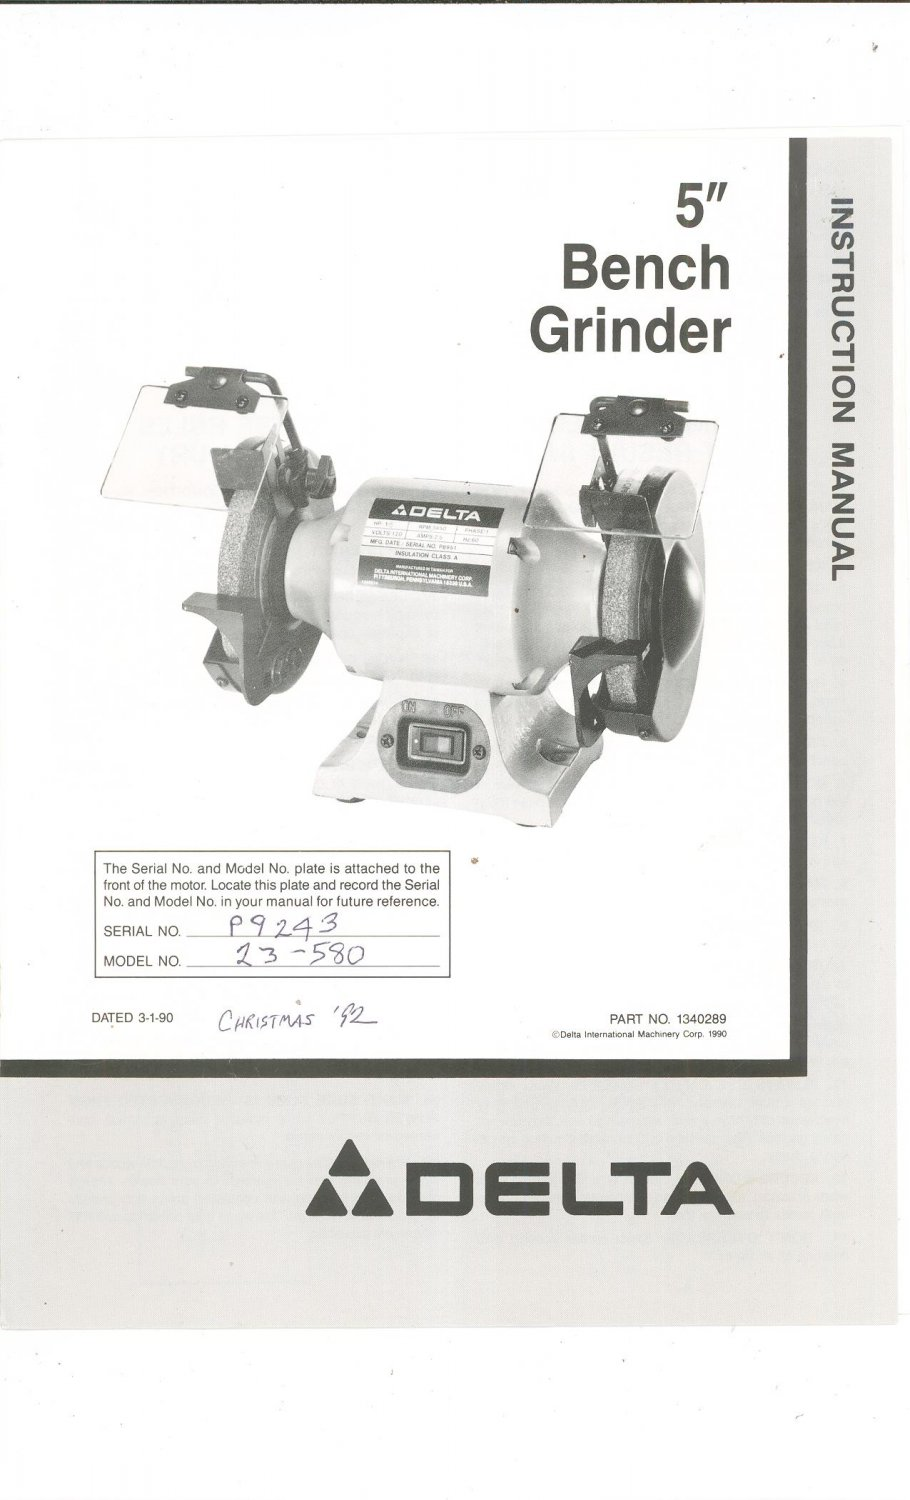 hight resolution of delta 5 bench grinder model 23 580 owners manual with parts list